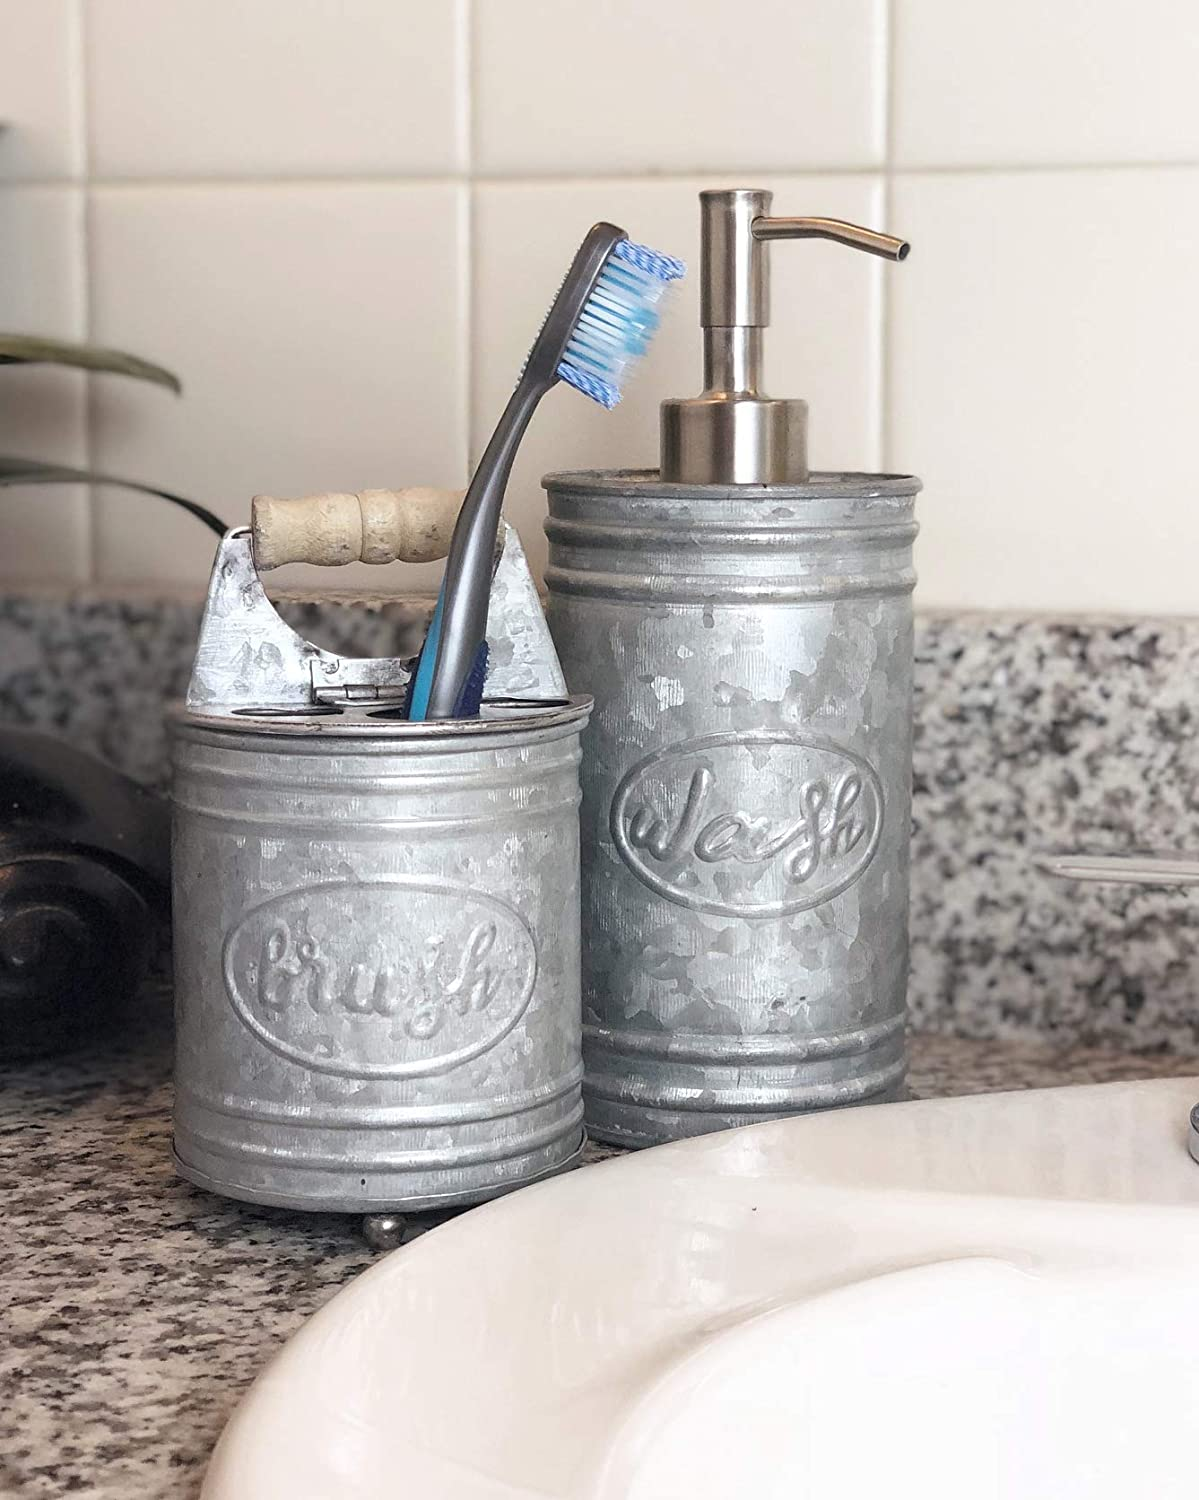 24 oz Warm Finish and Oval Label add Farmhouse Charm to Your Countertop Autumn Alley Galvanized Soap Dispenser Capacity